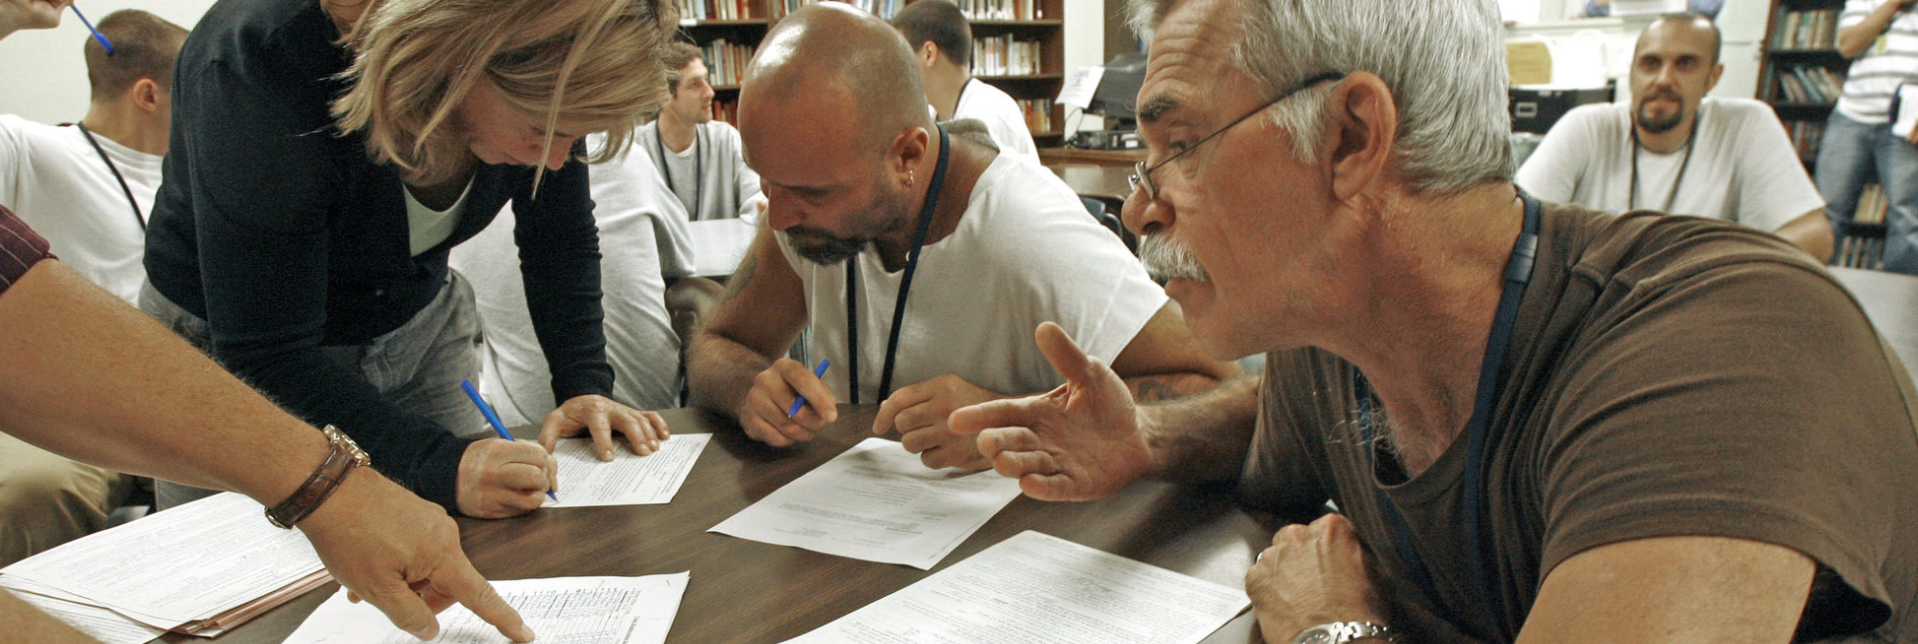 Prisoners at the Marble Valley Regional Correctional Facility in Rutland, Vermont, register to vote in 2008. Only two states, Vermont and Maine allow people to vote while they're in prison.TOBY TALBOT/ASSOCIATED PRESS